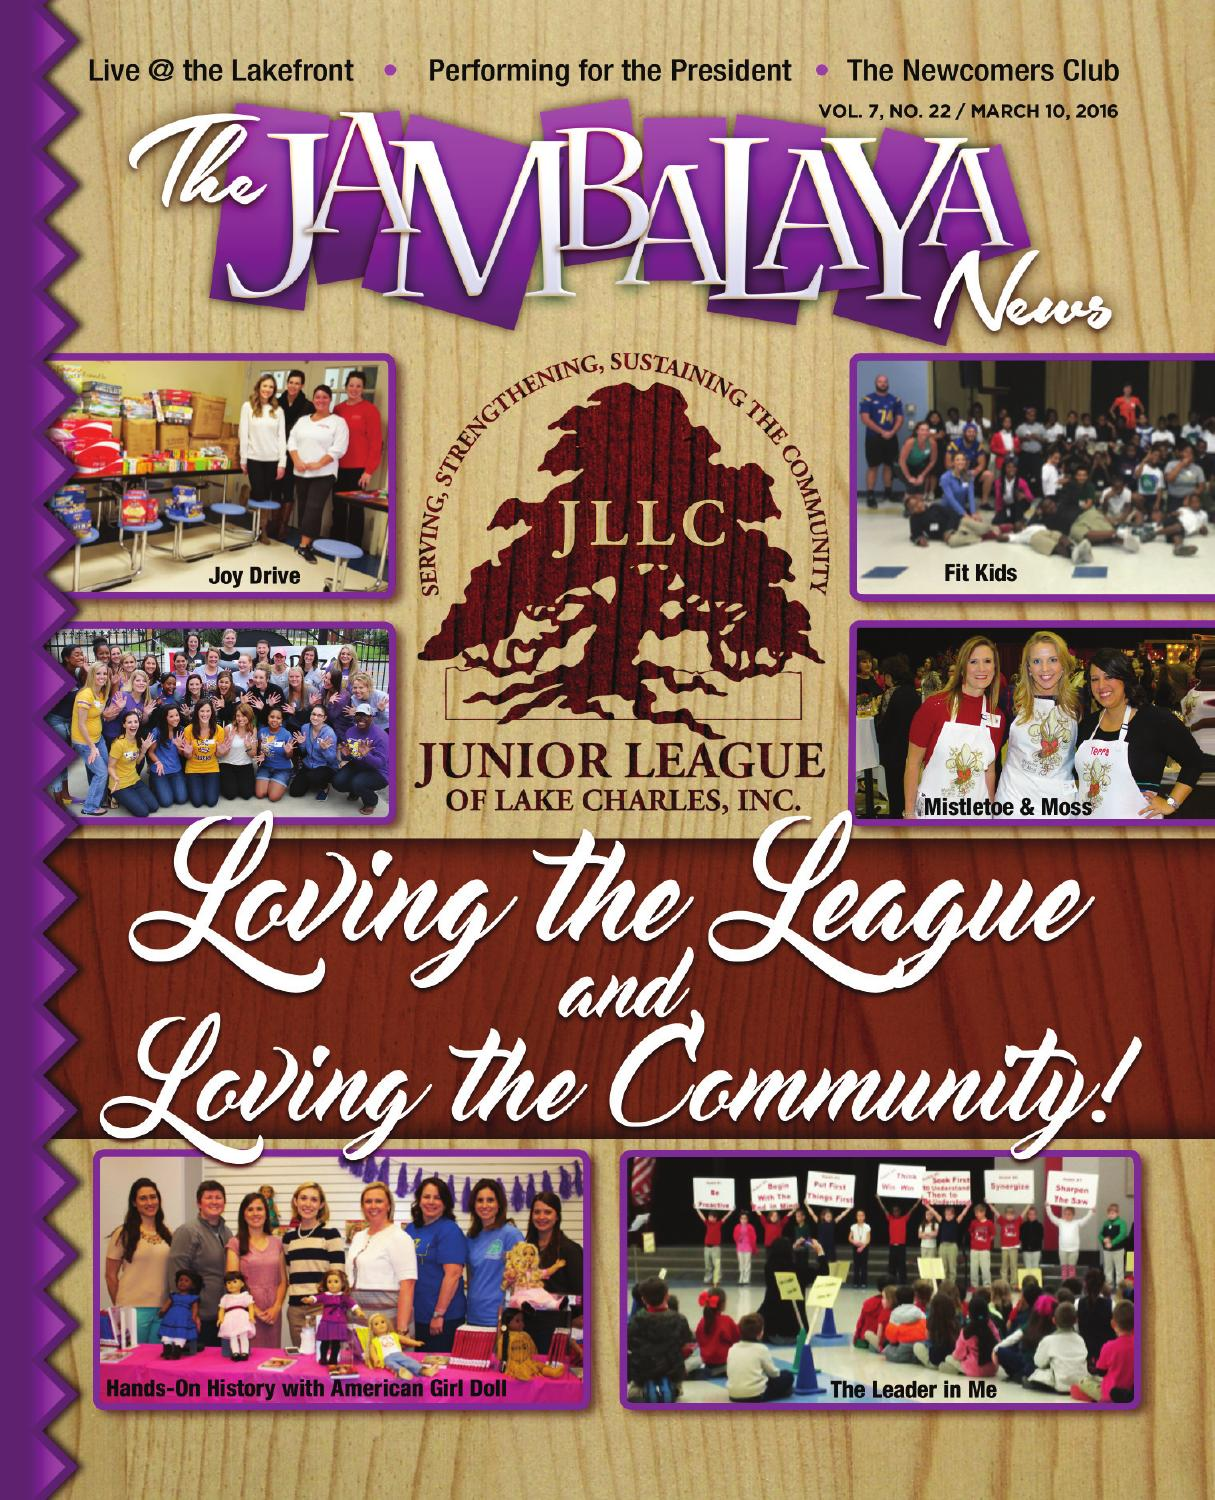 The Jambalaya News 031016 Vol 7 No 22 By The Jambalaya News